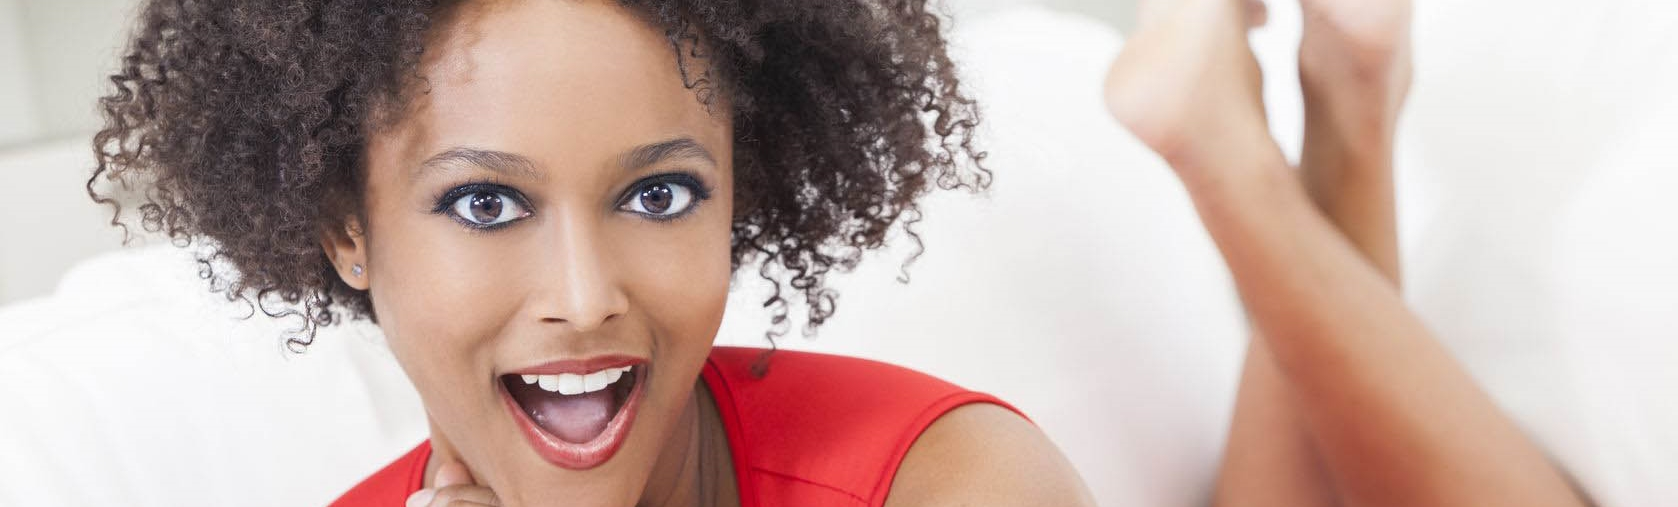 A-beautiful-mixed-race-African-American-girl-or-young-woman-laying-down-wearing-a-red-dress-looking-happy-and-surprised-.jpg